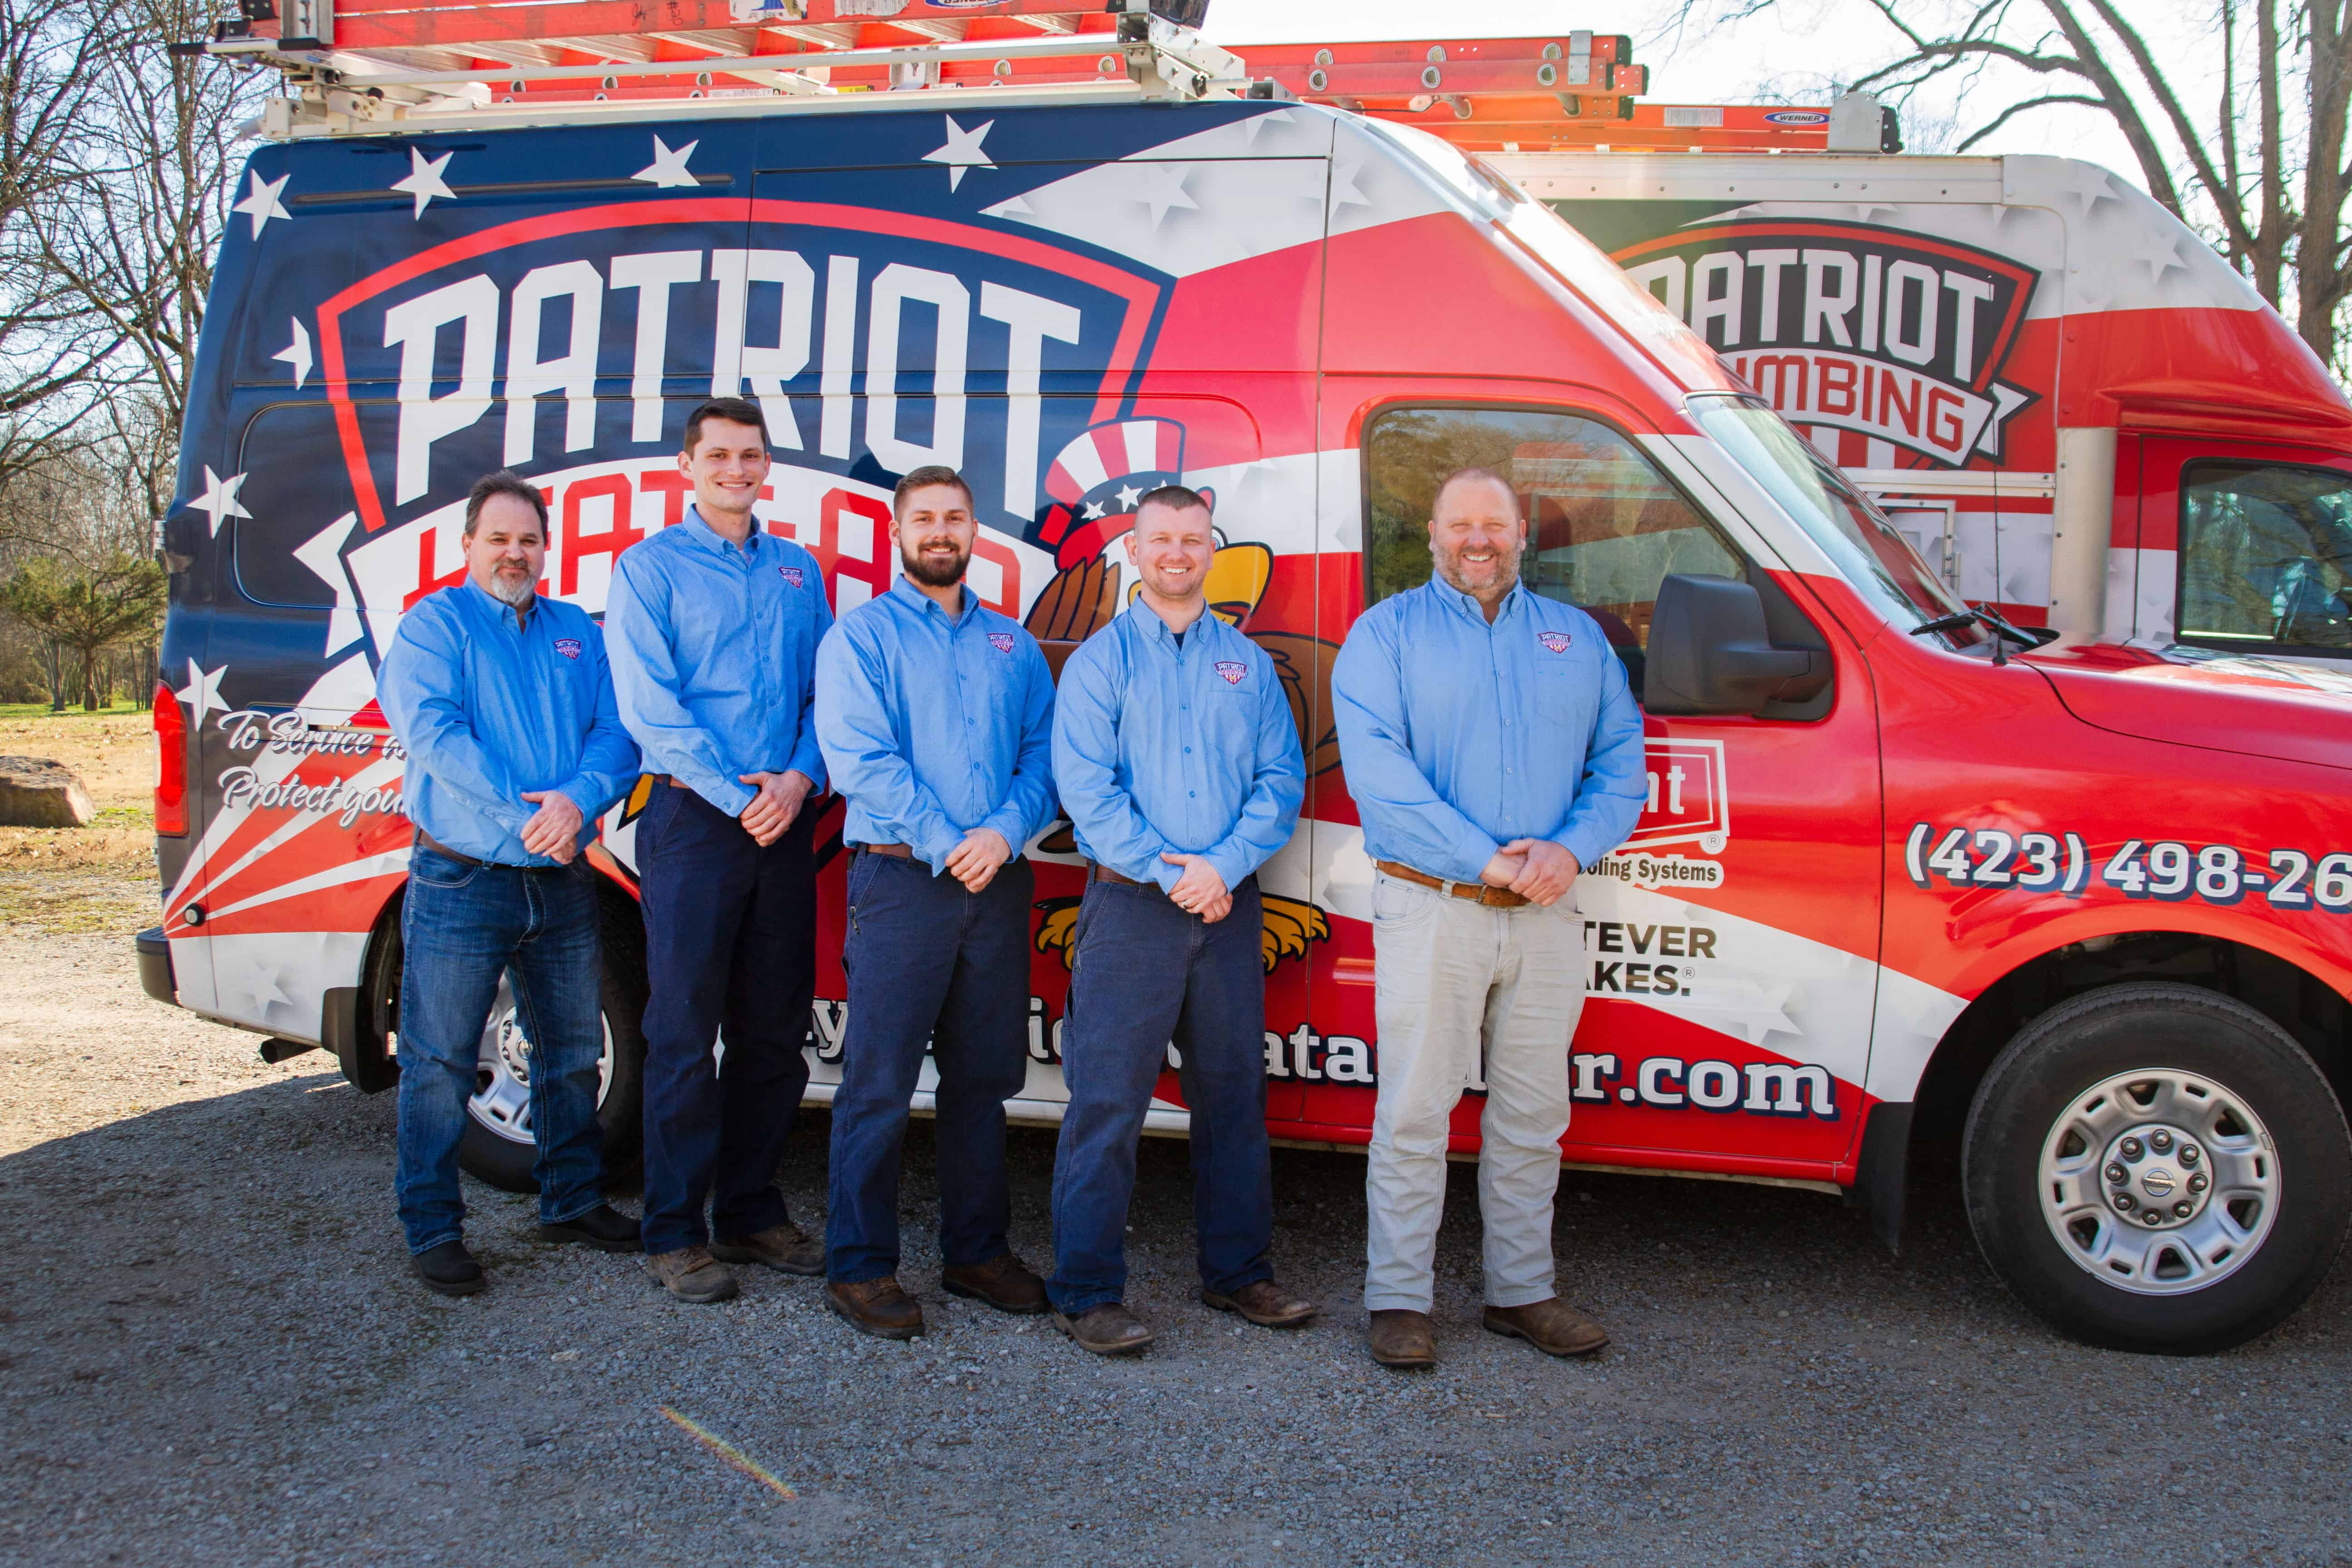 HVAC Services Heat and Air Services Patriot Heat & Air Chattanooga TN